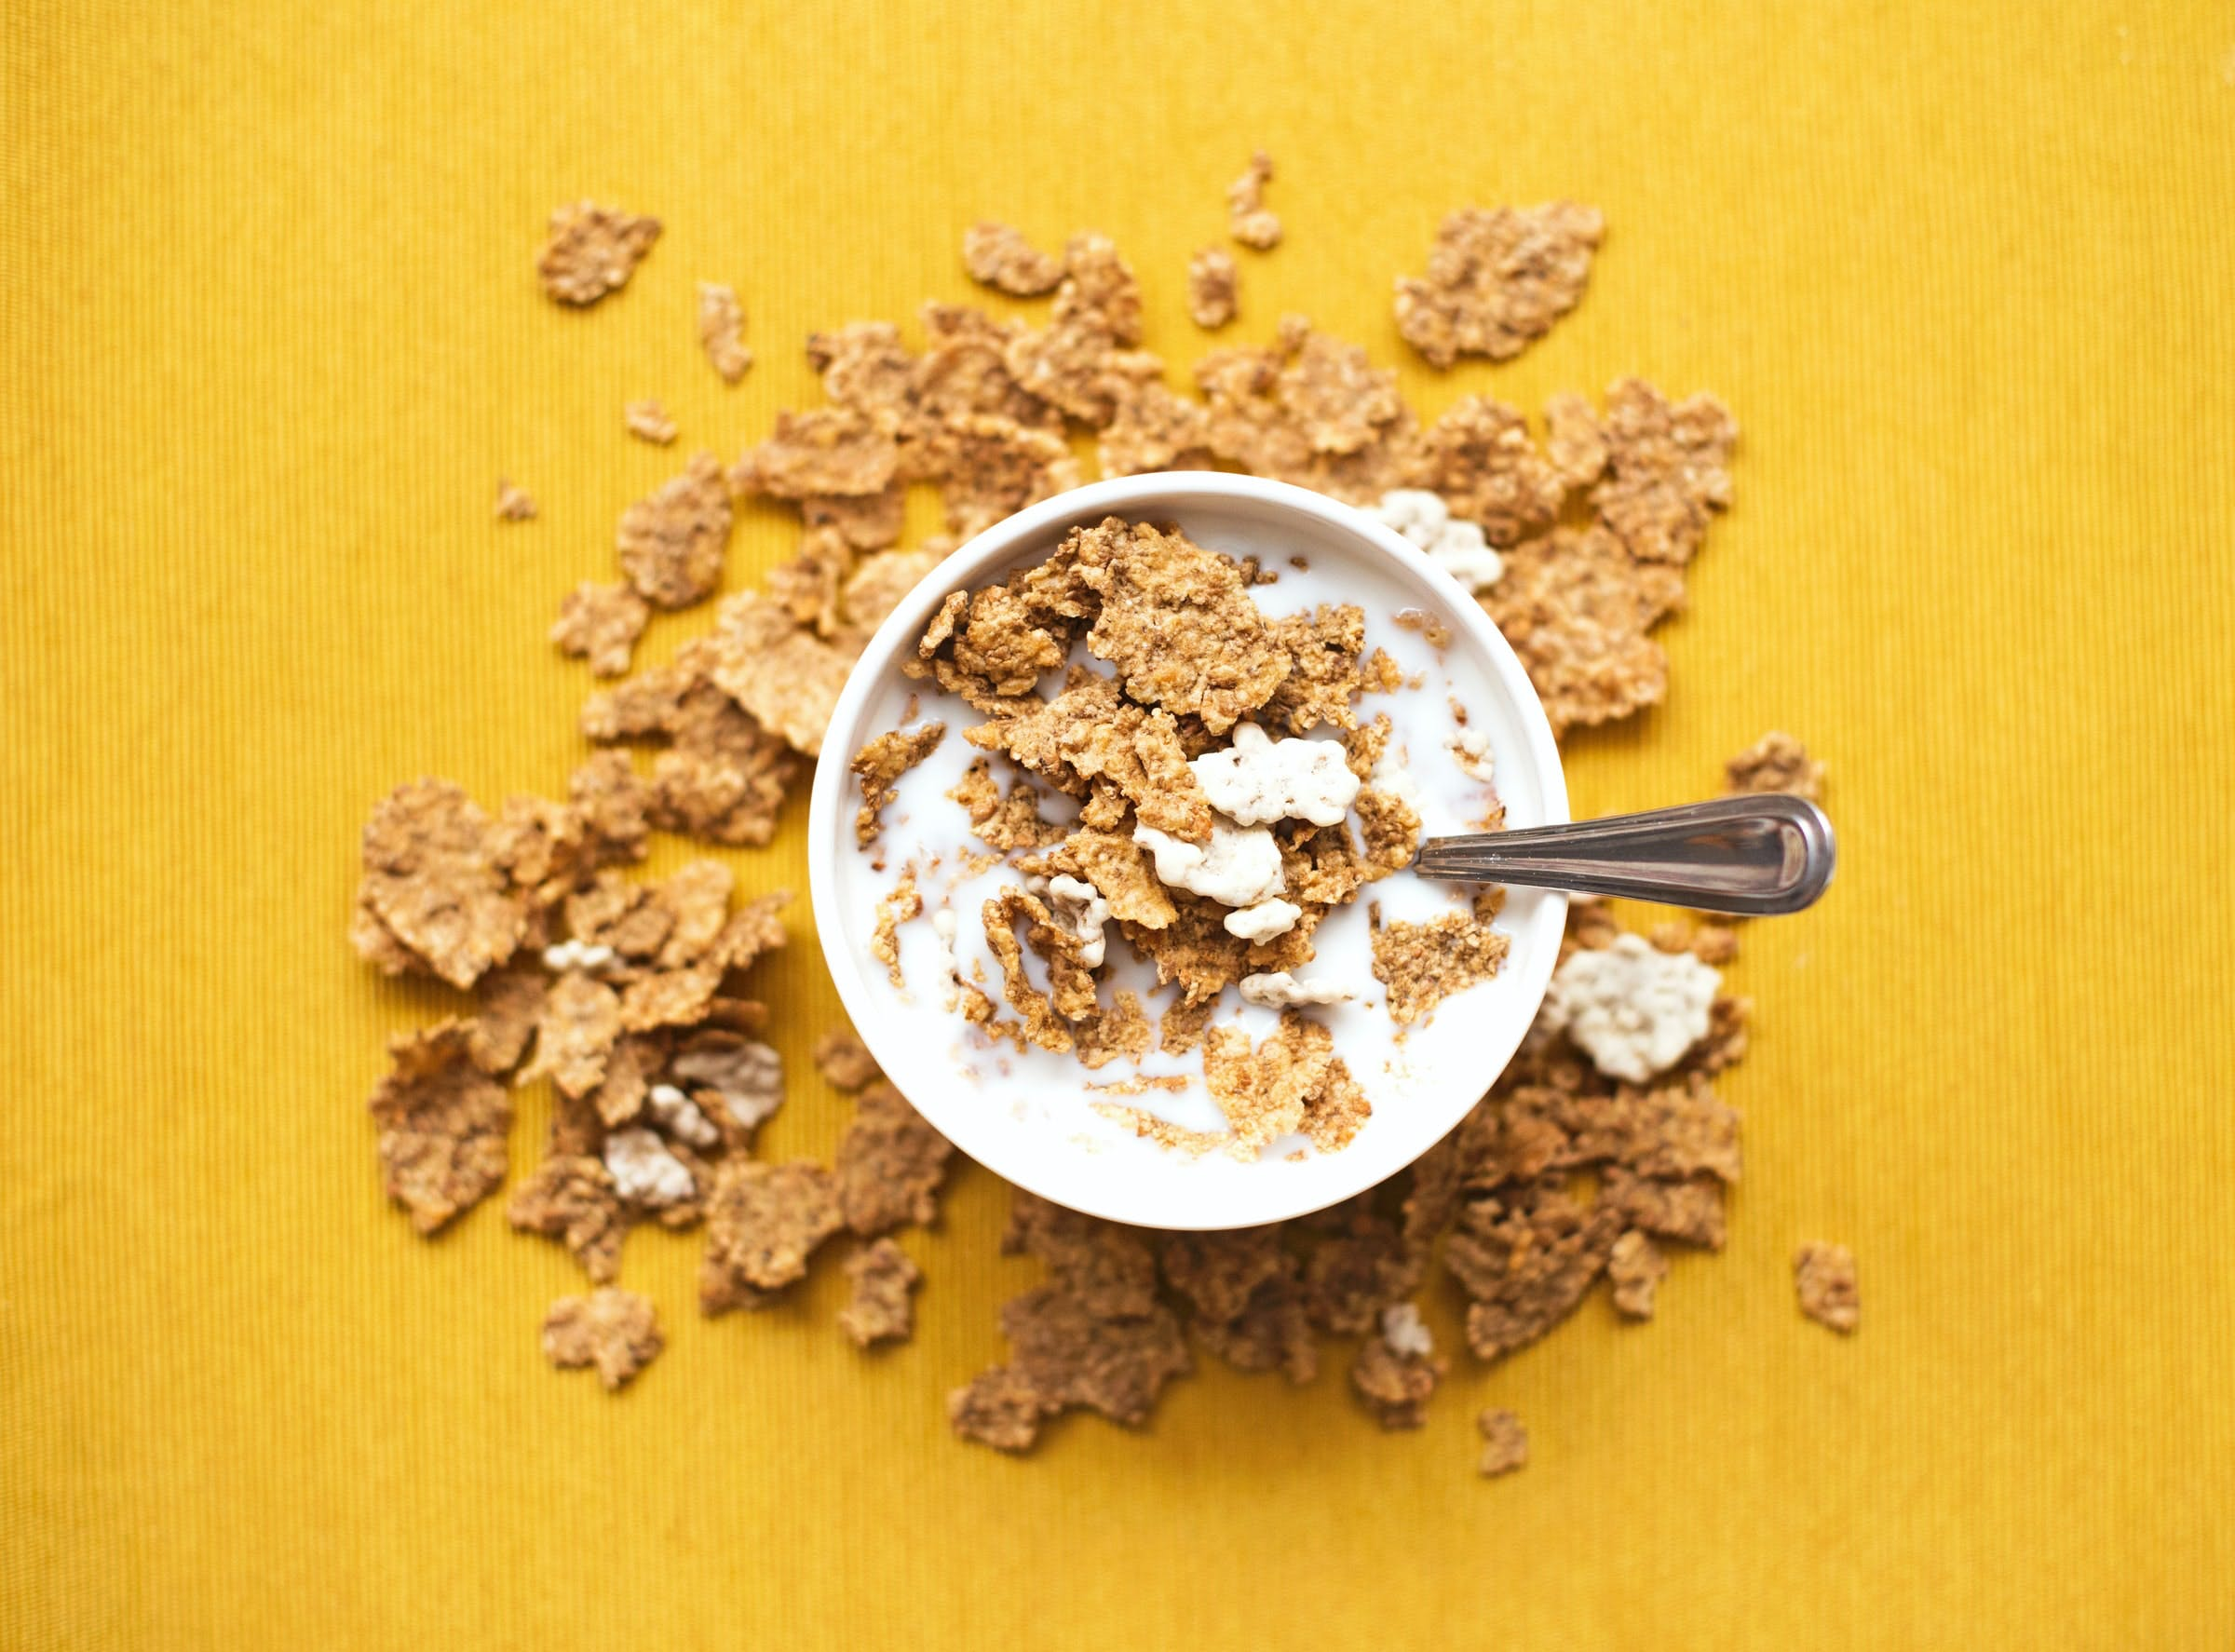 bowl of cereal on yellow background